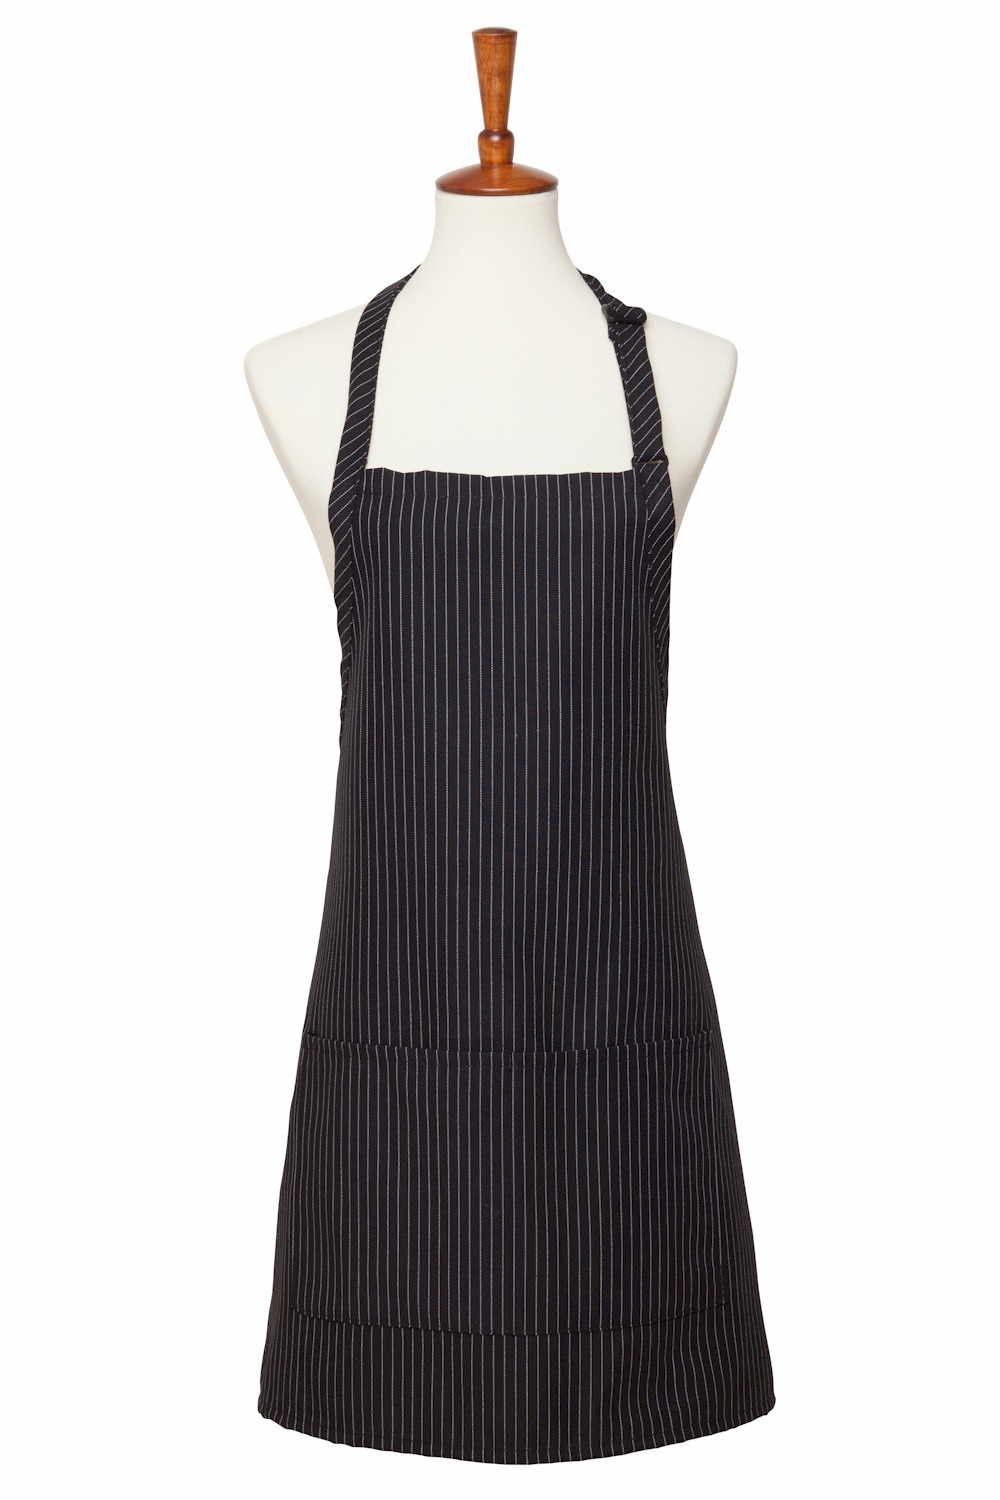 Style 212GS Gangster Pinstripe Three Pocket Bib Apron